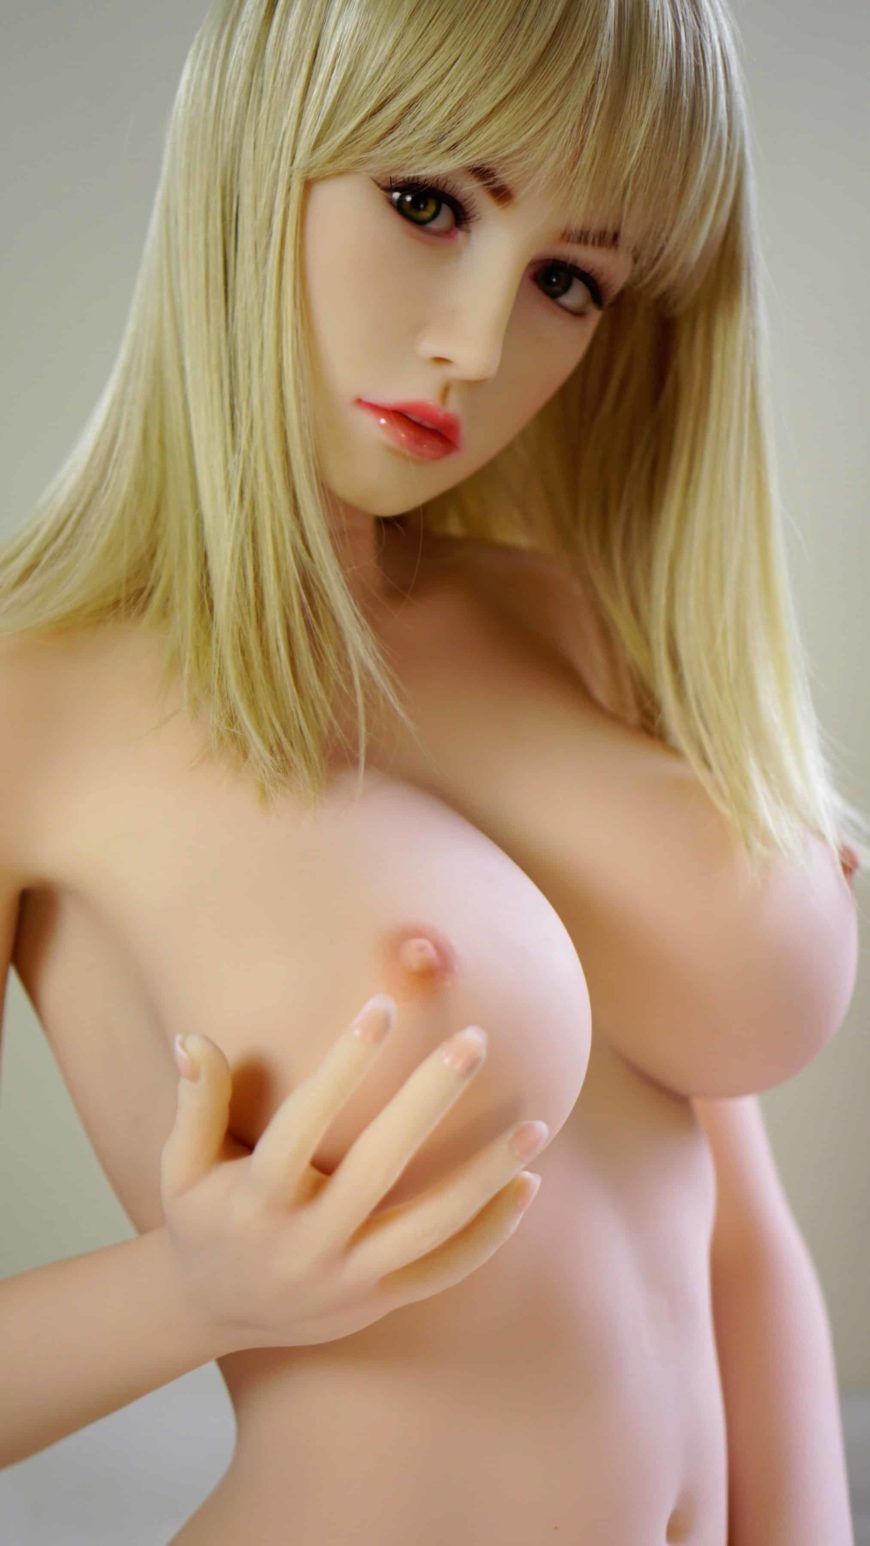 Beautiful-Blonde-Sex-Dolls-From-Dirty-Knights-Sex-Dolls-Posing-Nude-1 (4)